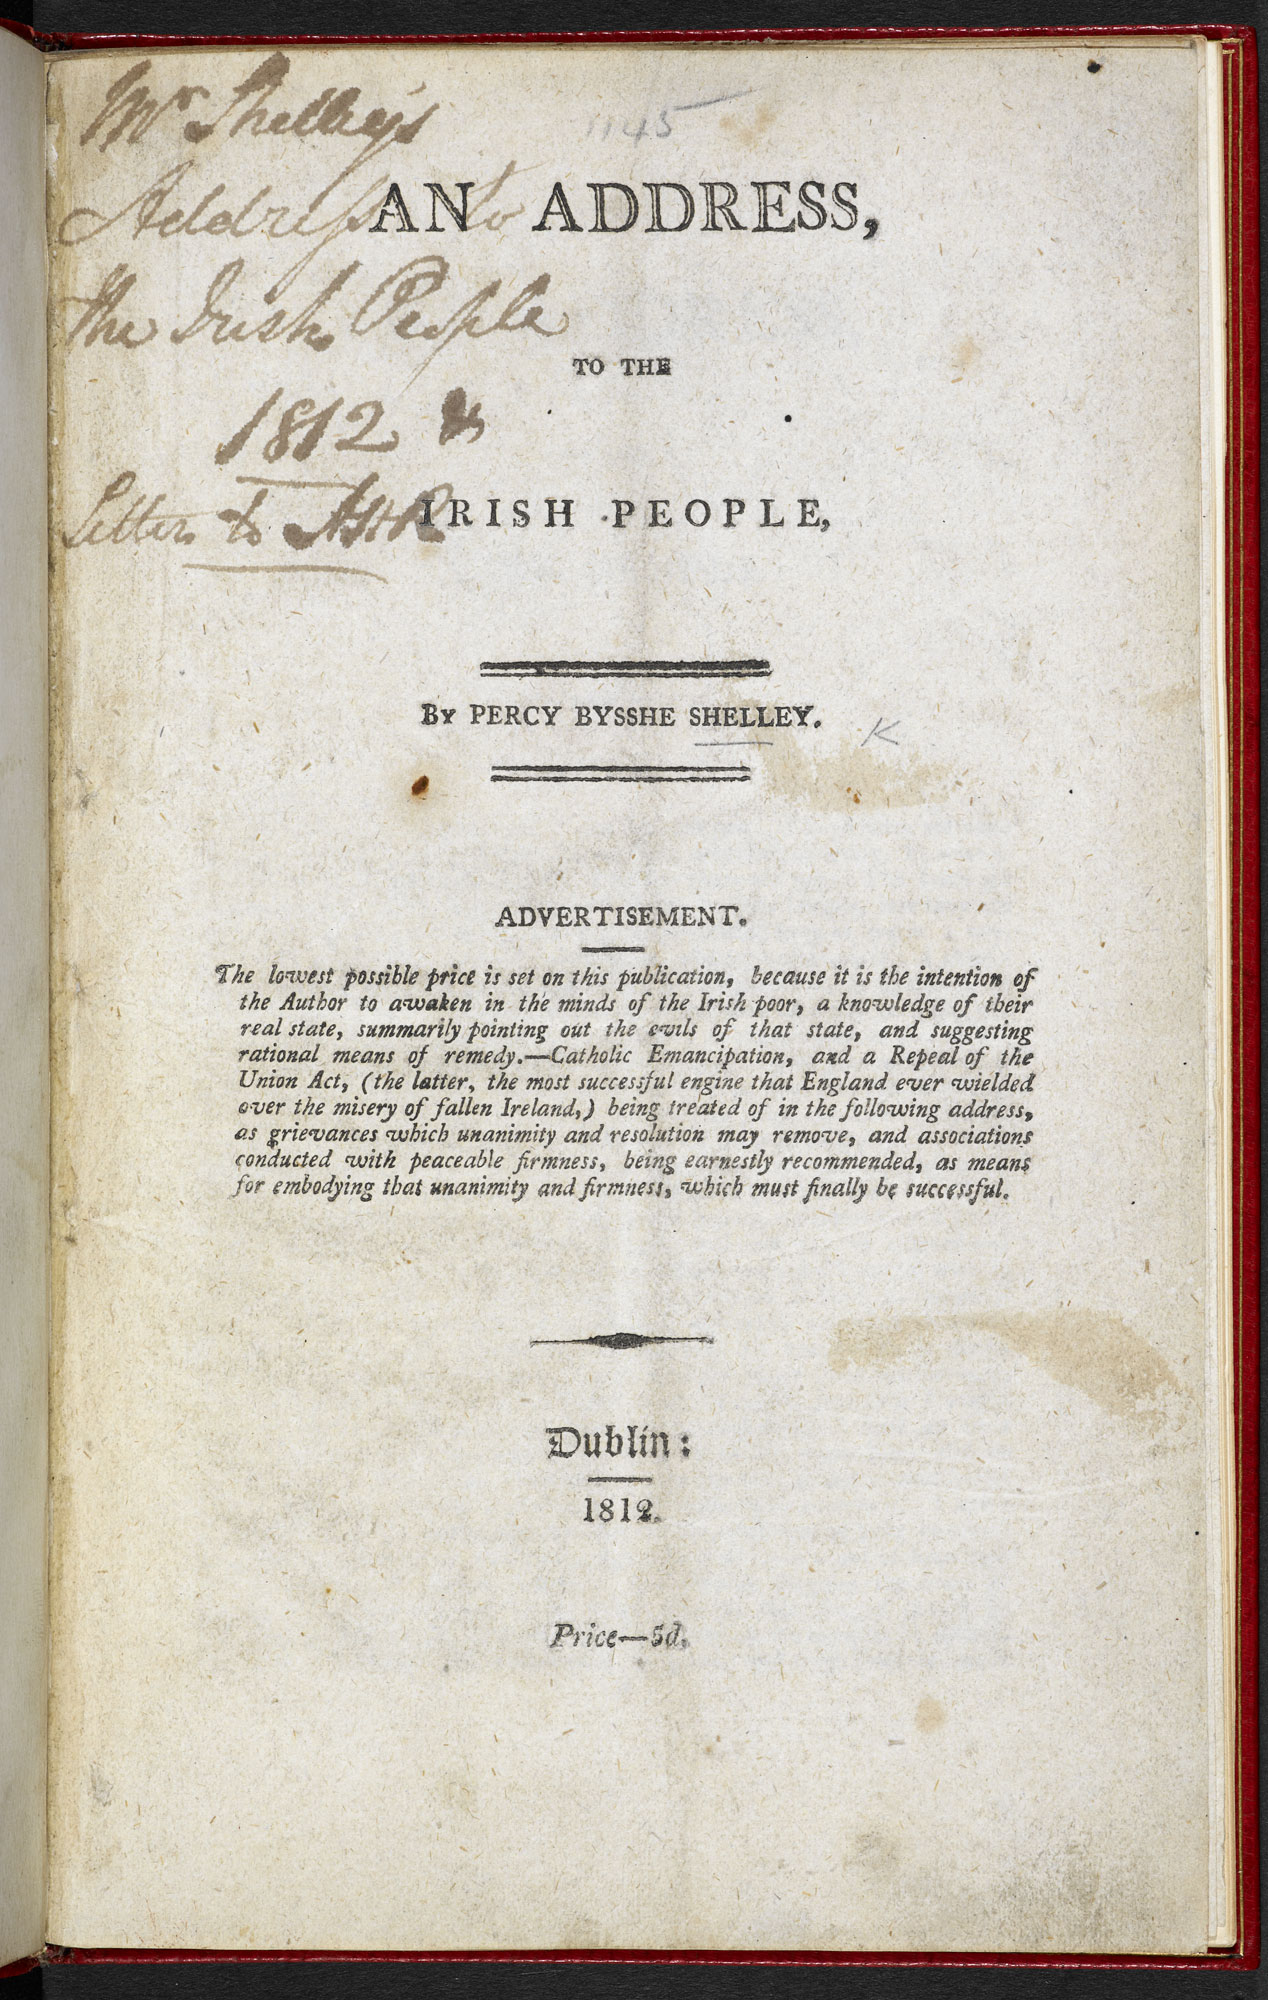 P B Shelley's Address to the Irish People [page: frontispiece]